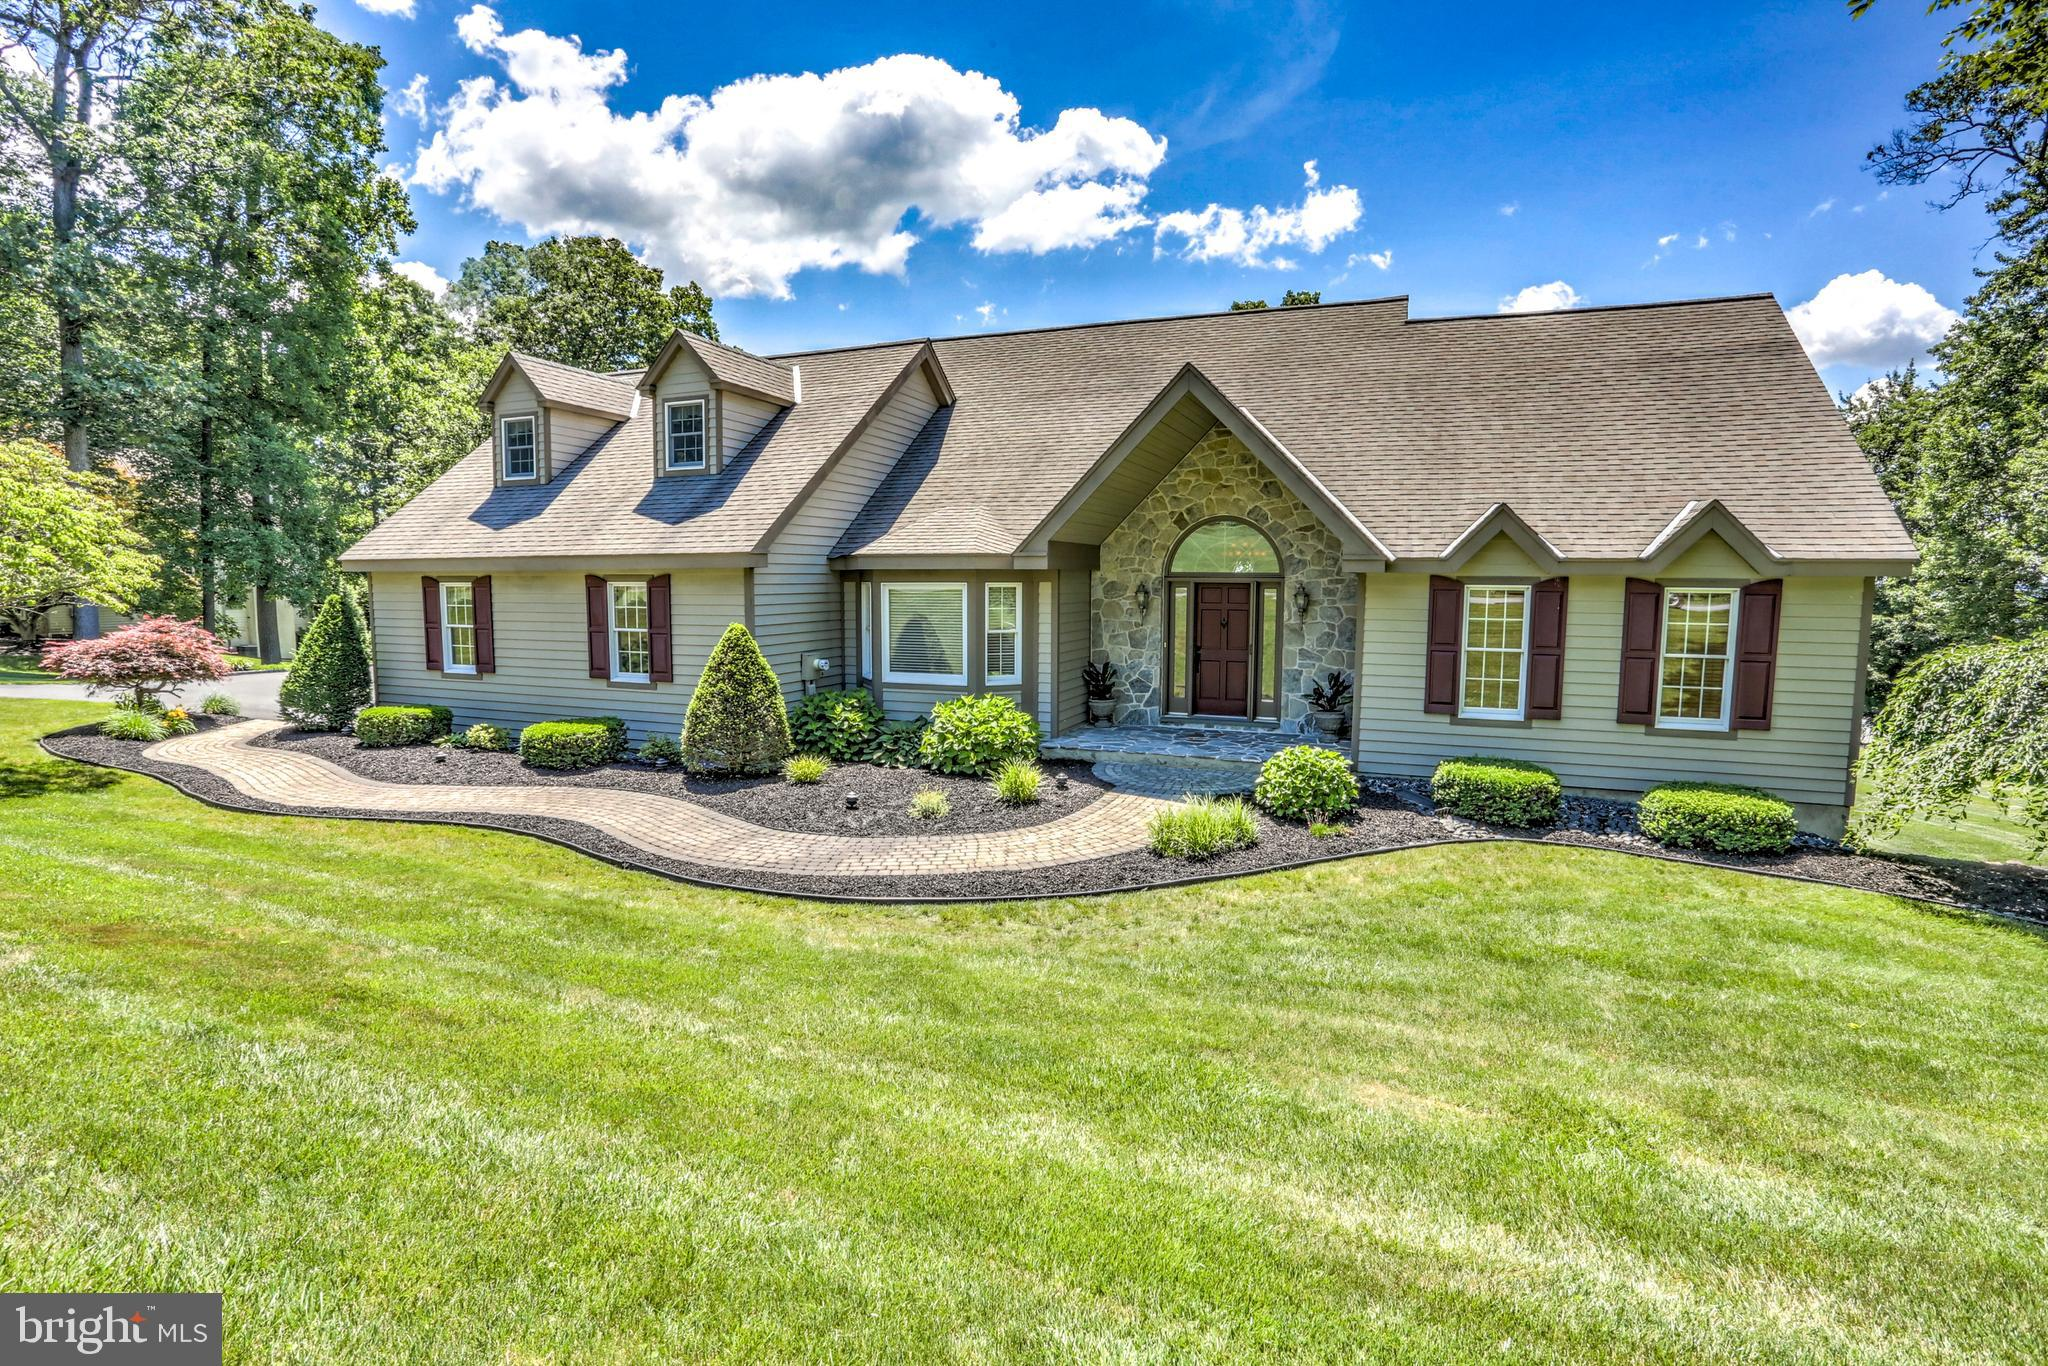 917 TIMBERLINE DRIVE, GAP, PA 17527